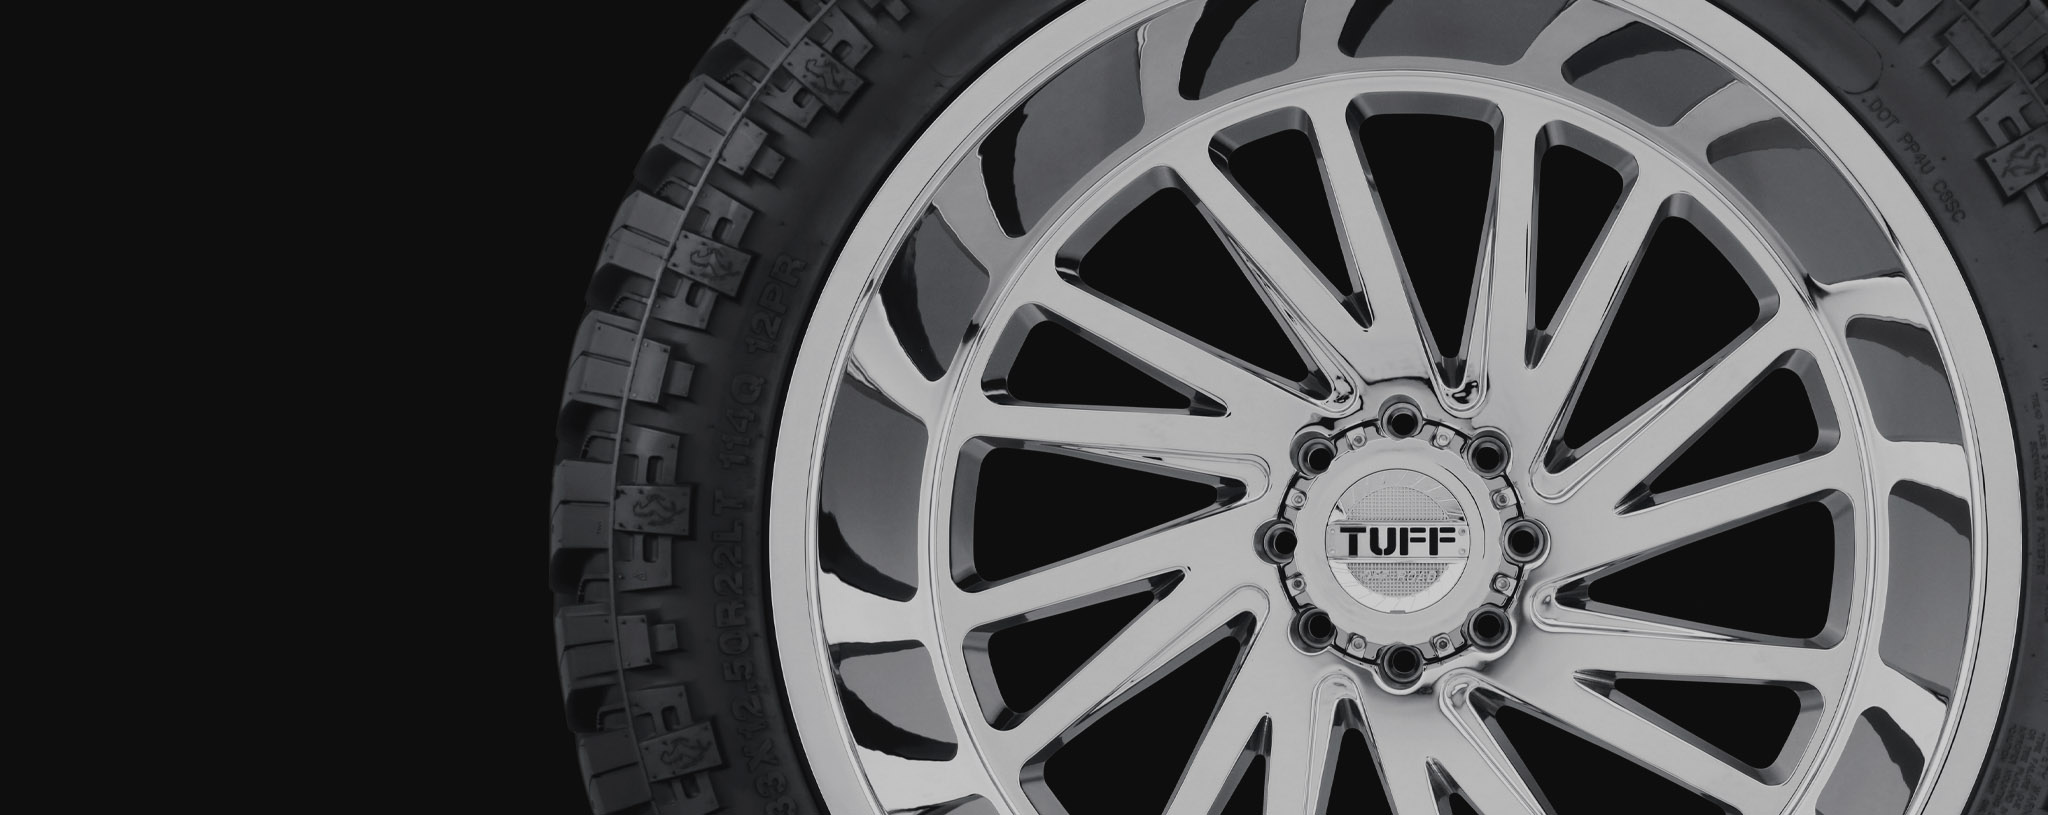 Off Road Wheels Truck Wheels And Rims By Tuff Wheels - Rim websites that show your car